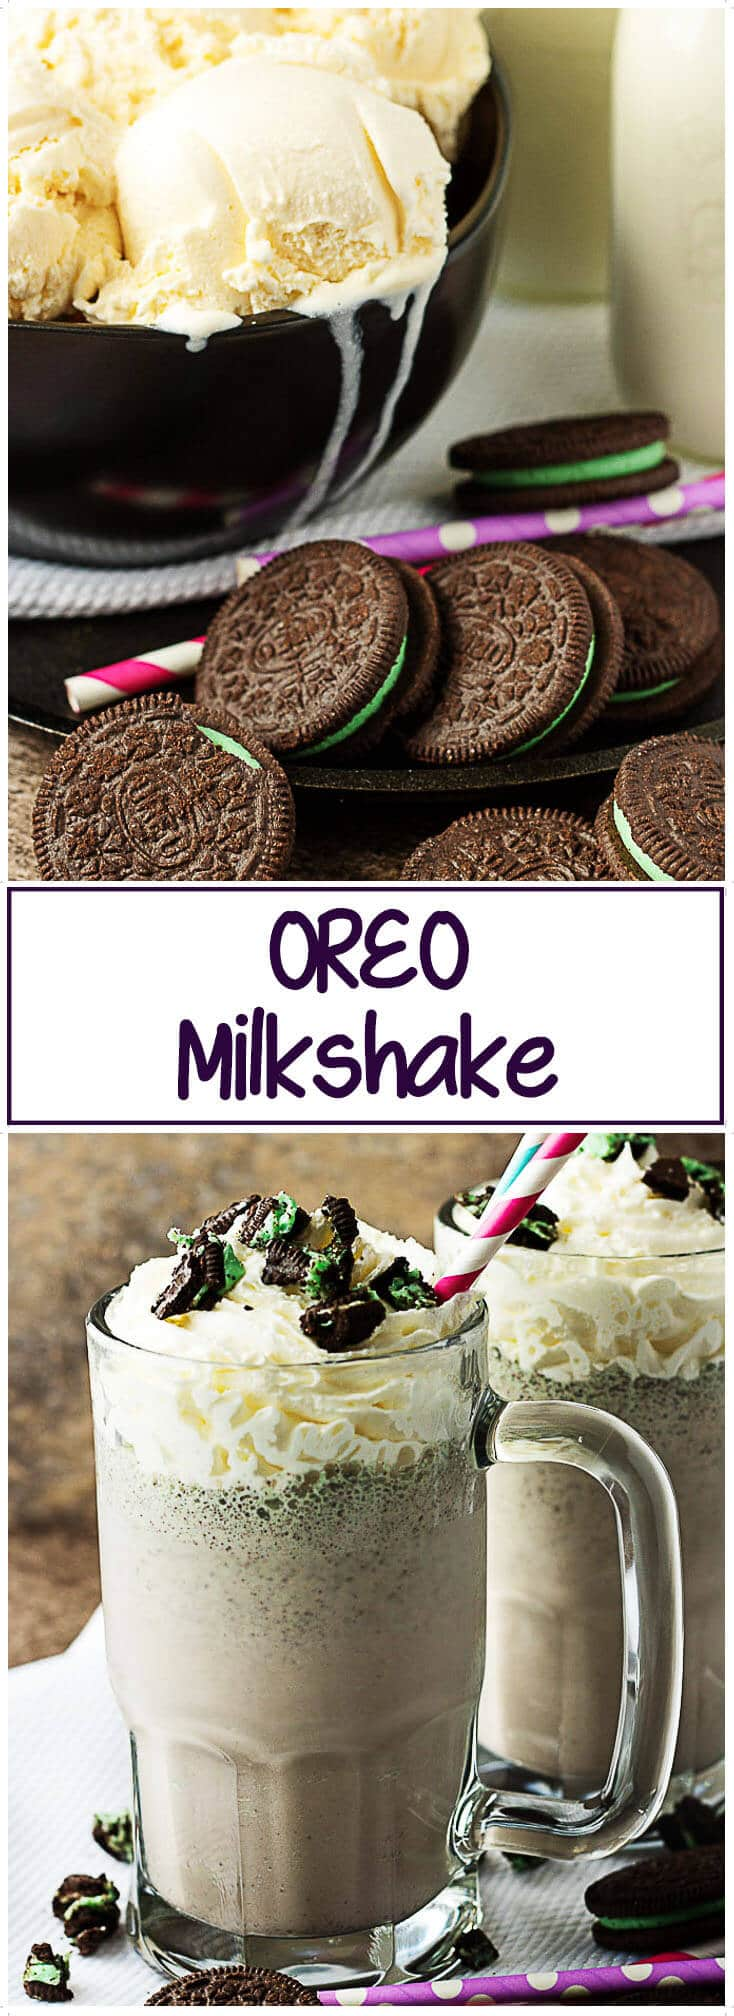 Ever wondered how to make the best #Oreo #Milkshake? It's easy, follow these steps and in less than 10 minutes, you'll have a #delicious cookie-inspired treat! #dessert